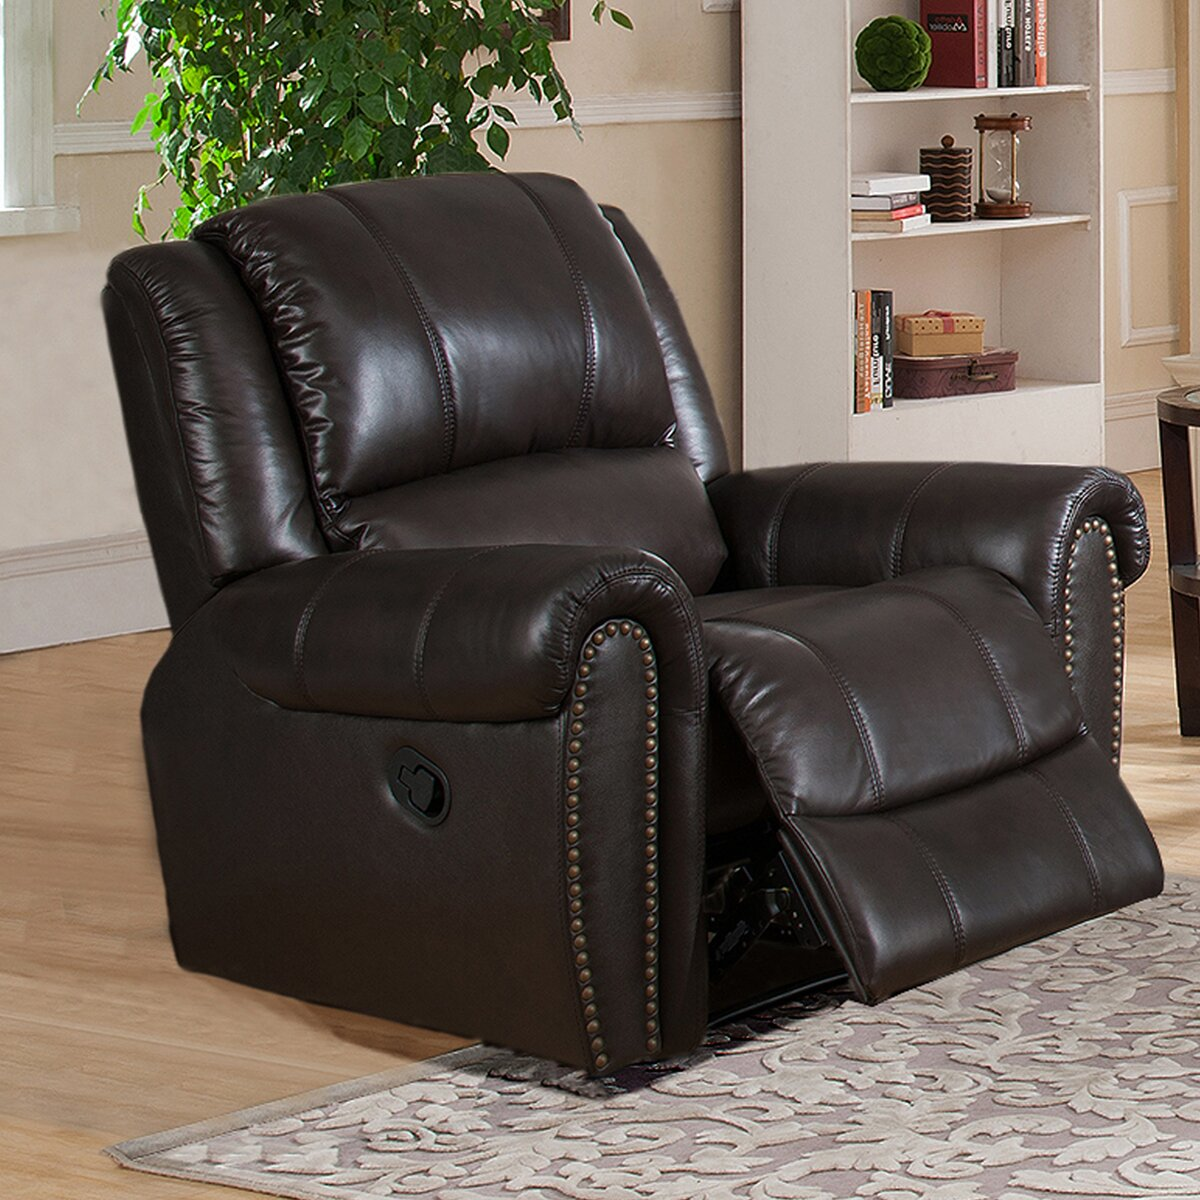 Amax Charlotte 3 Piece Leather Recliner Living Room Set